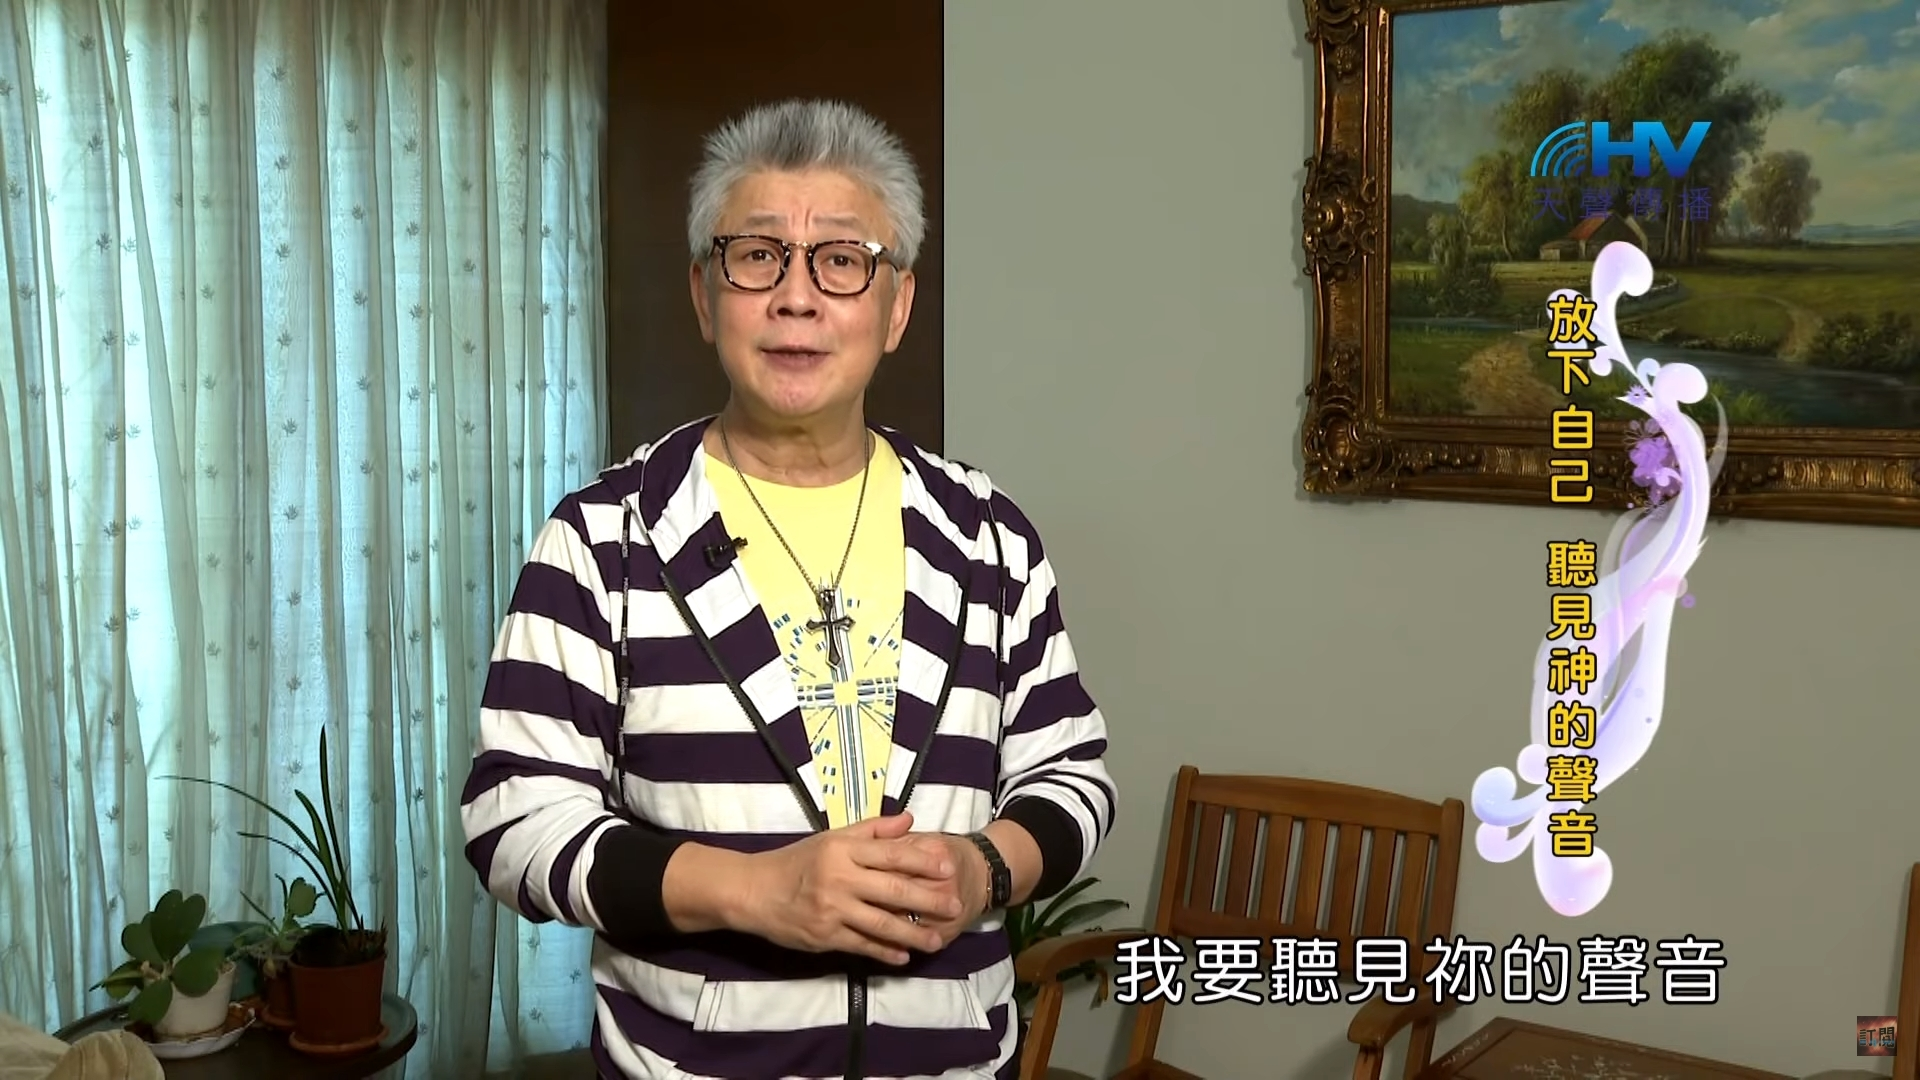 You are currently viewing 20200618恩典365 – 亞伯拉罕 41.清楚的啟示 : 放下自己 聽見神的聲音